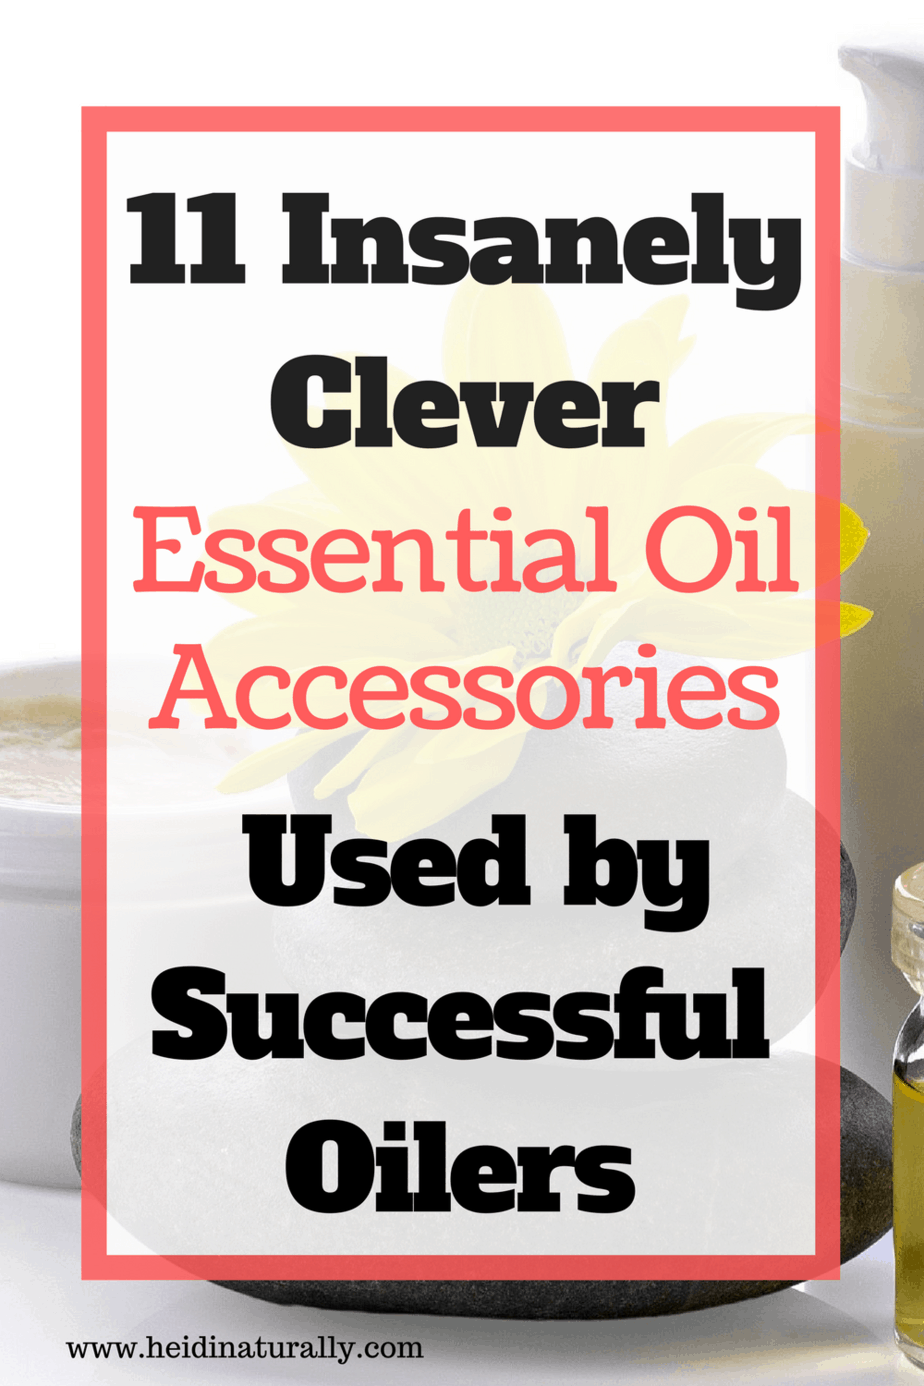 Find out the 11 insanely clever essential oil accessories & how to use them. Learn how they can help you use your oils safely & effectively.